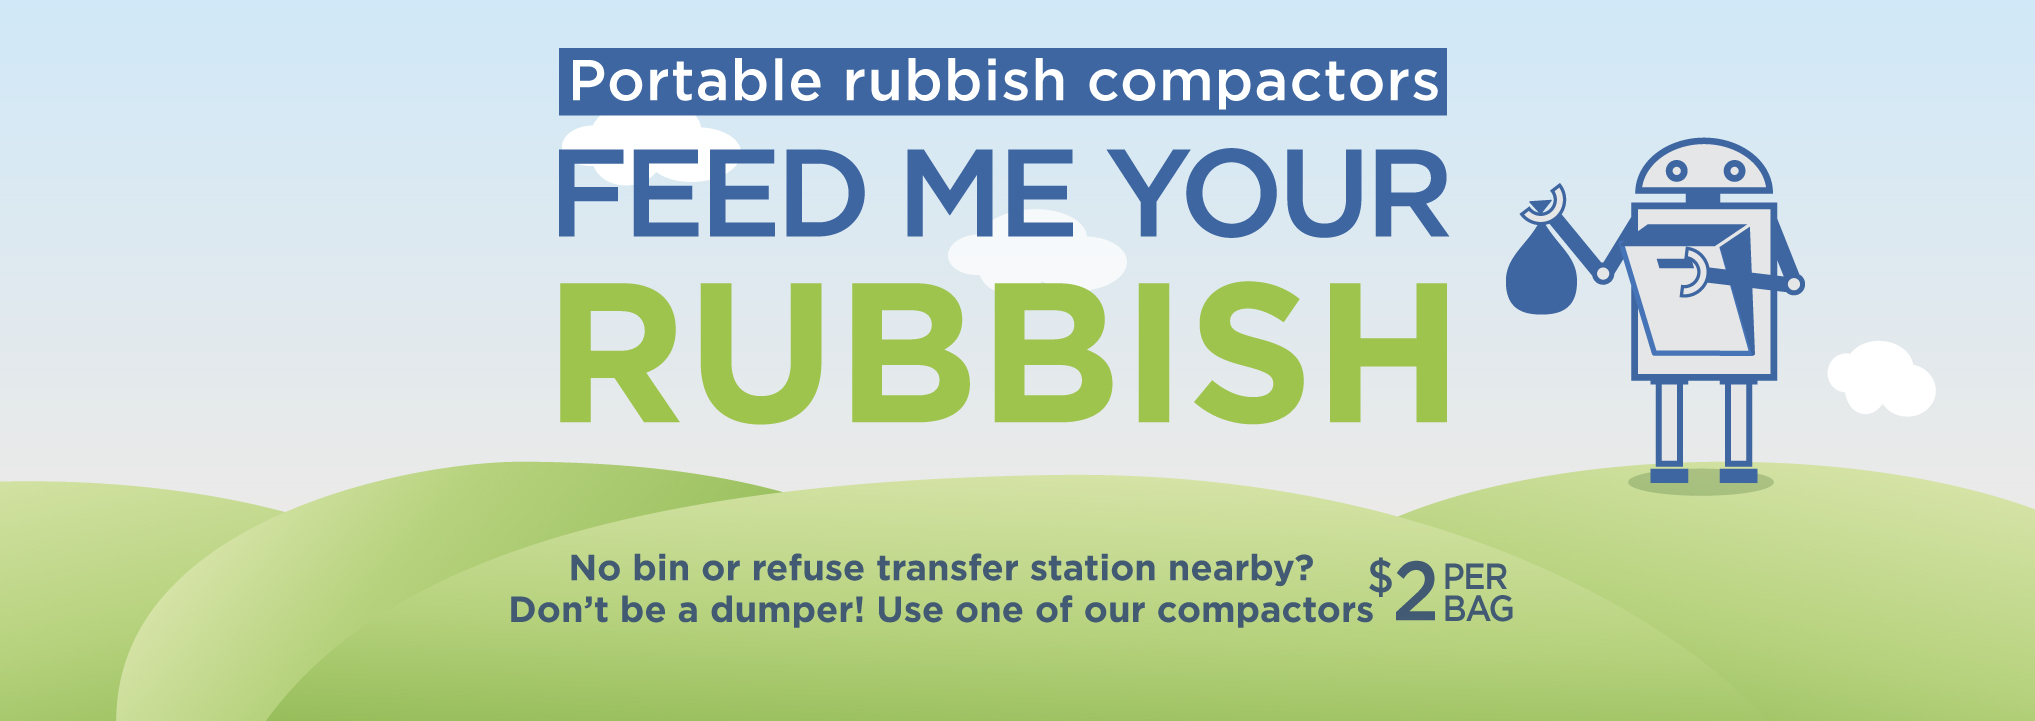 Portable Rubbish Compactor rolling banner